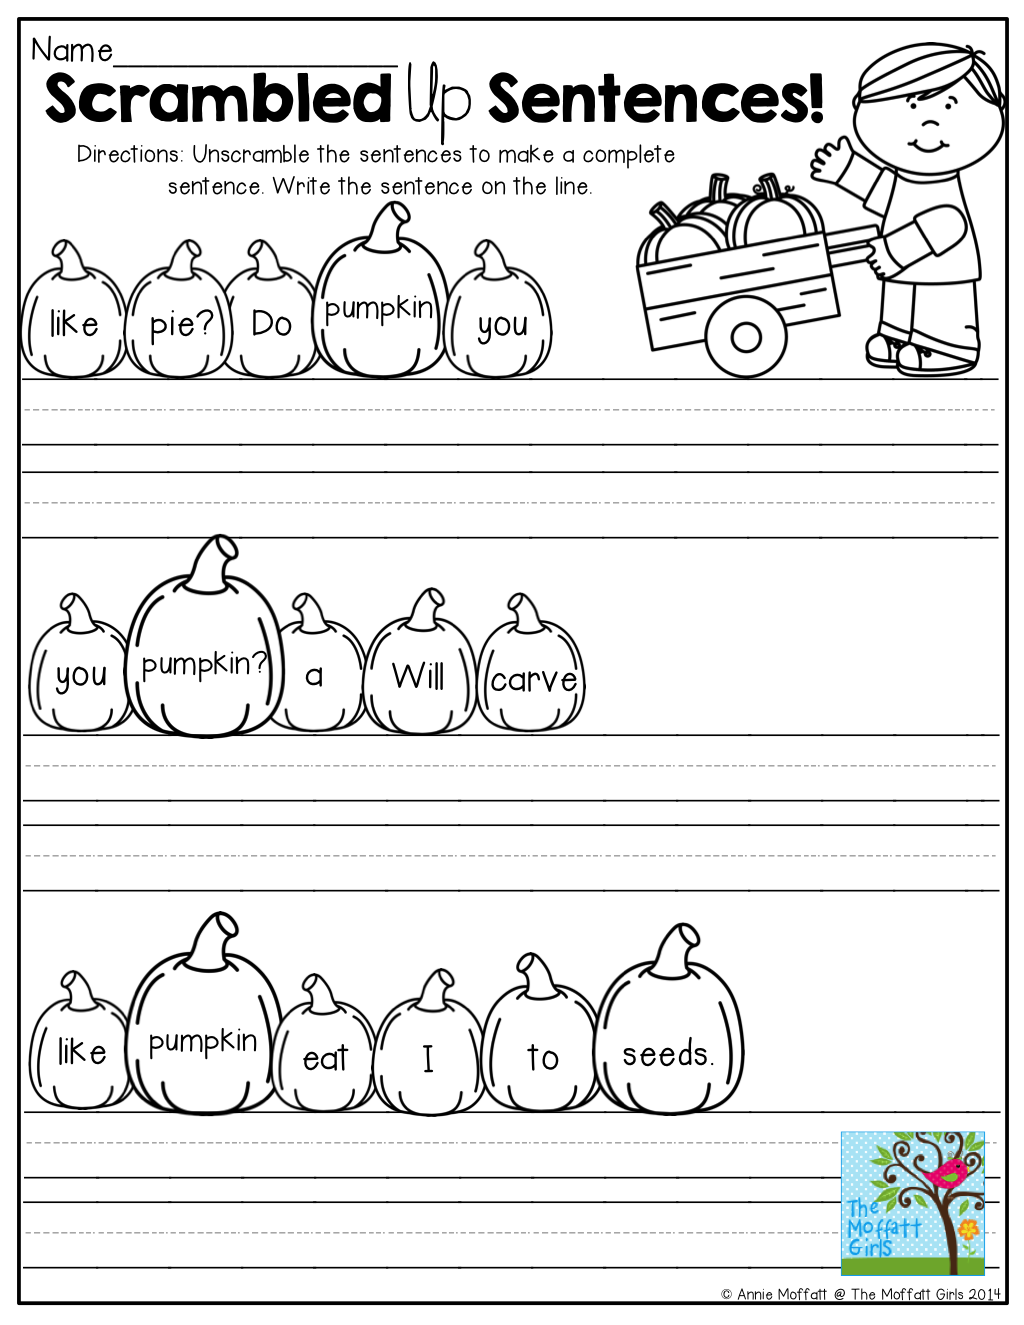 100 Unscramble Sentences Worksheet Scrambled Up